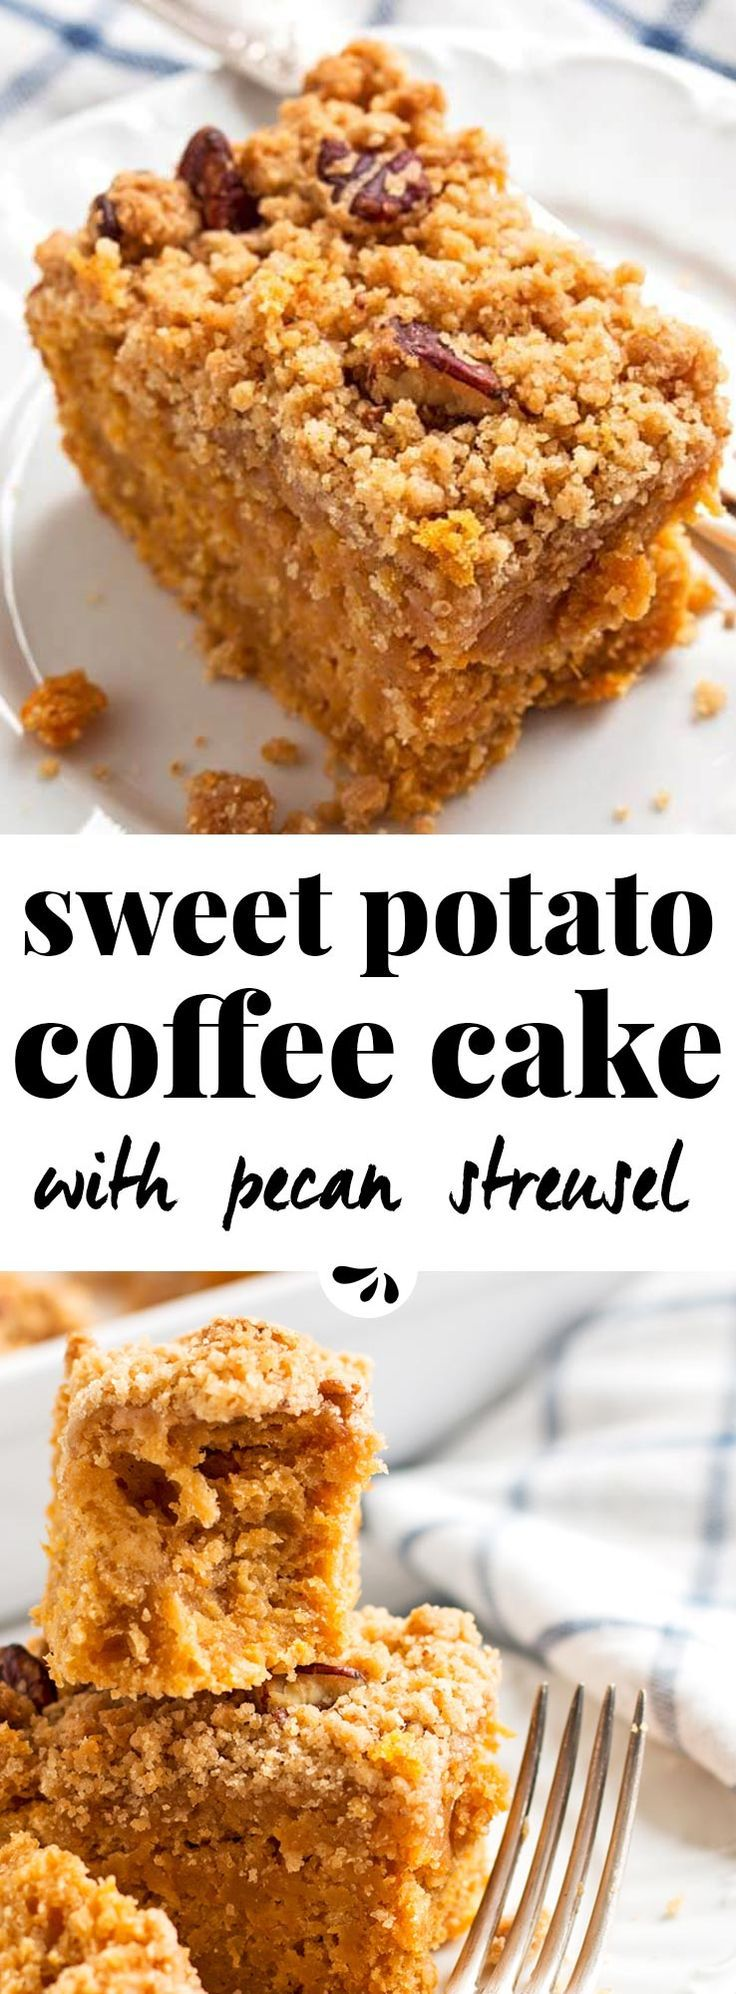 Are you looking for an easy coffee cake you can make for a crowd this fall? Try this sweet potato one with pecan streusel! You can serve it as a decadent brunch treat or a simple dessert, either way it tastes delicious. The crumb topping is incredible! This recipe makes a moist cake, made with mashed sweet potatoes, maple syrup and spices. It's a great idea for autumn and the flavors are rustic, delicious - and a nice change to all the pumpkin craze!